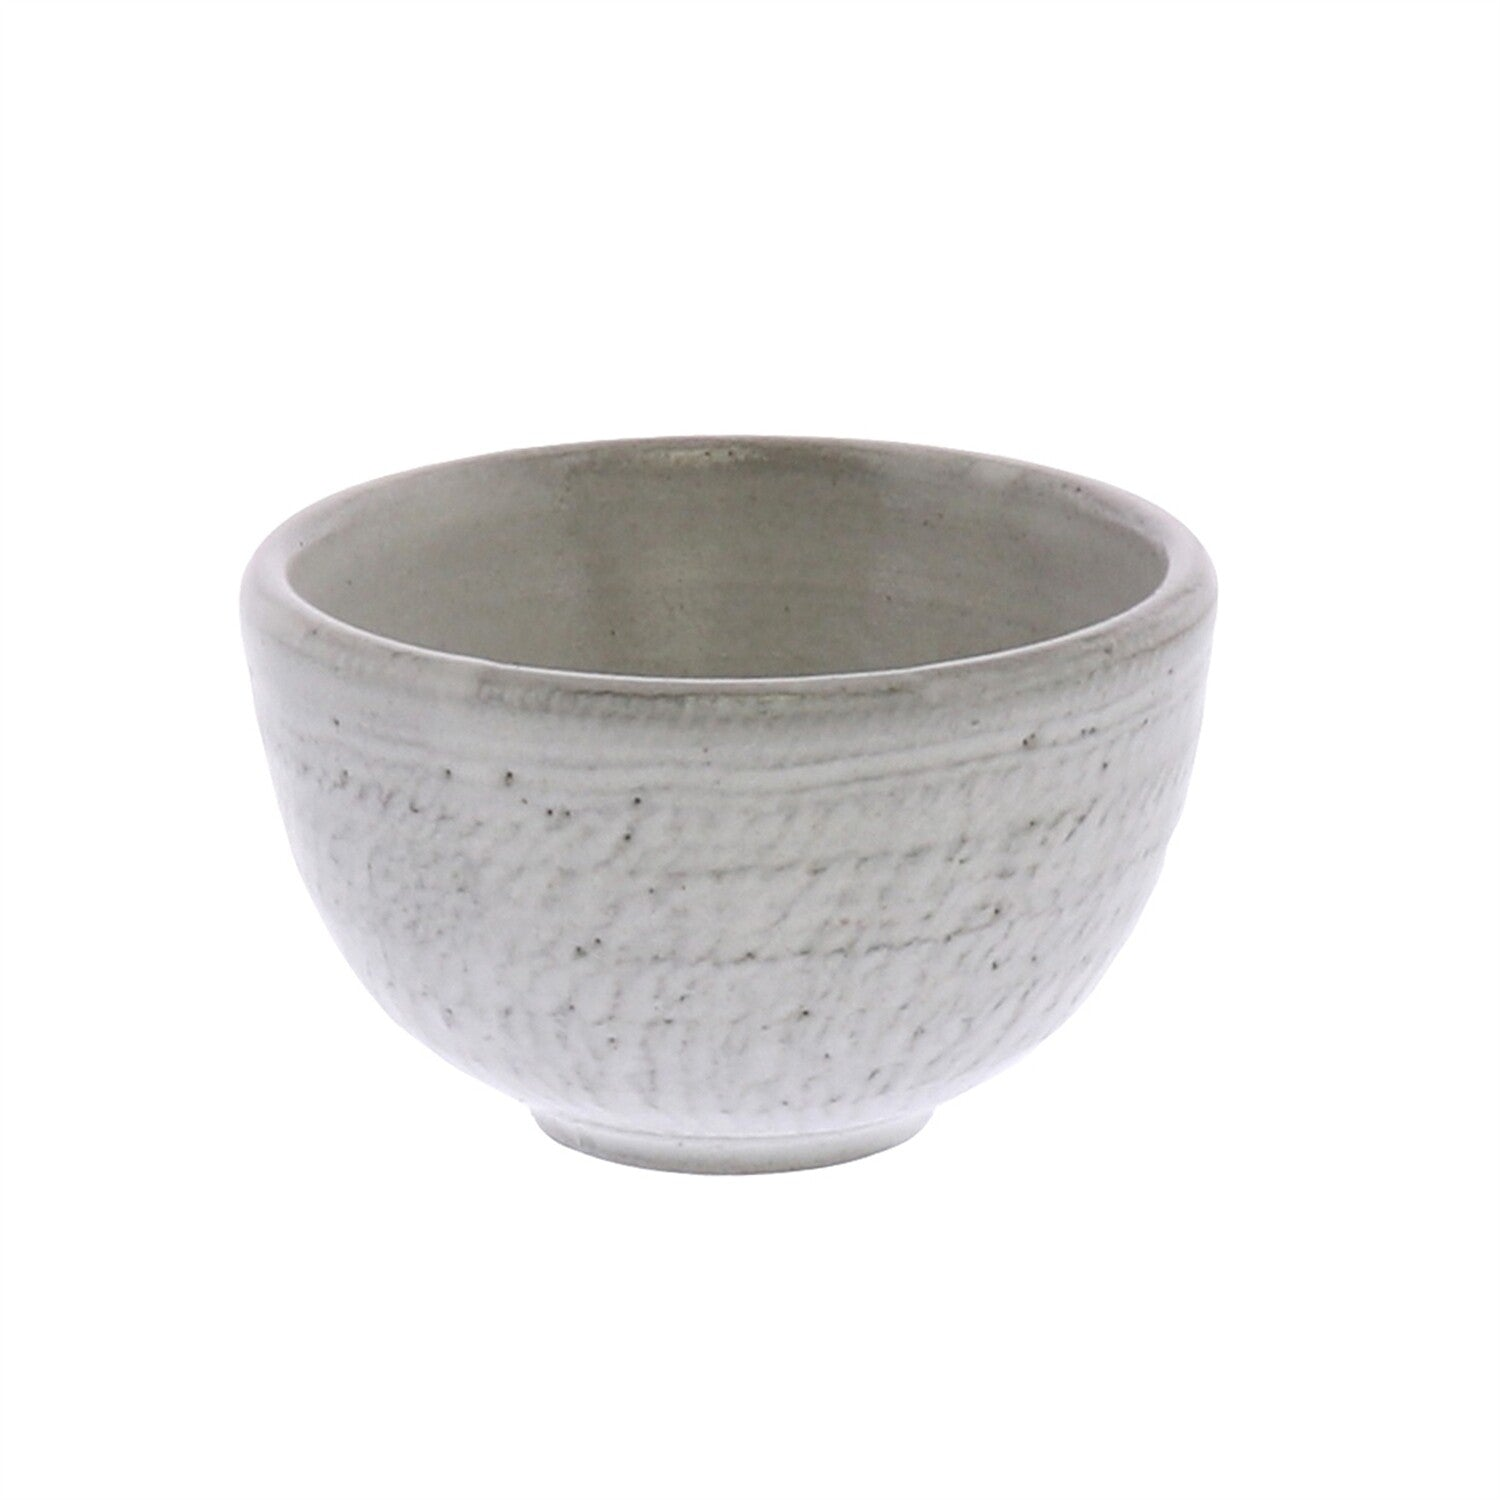 Roth Pinch Bowl, White